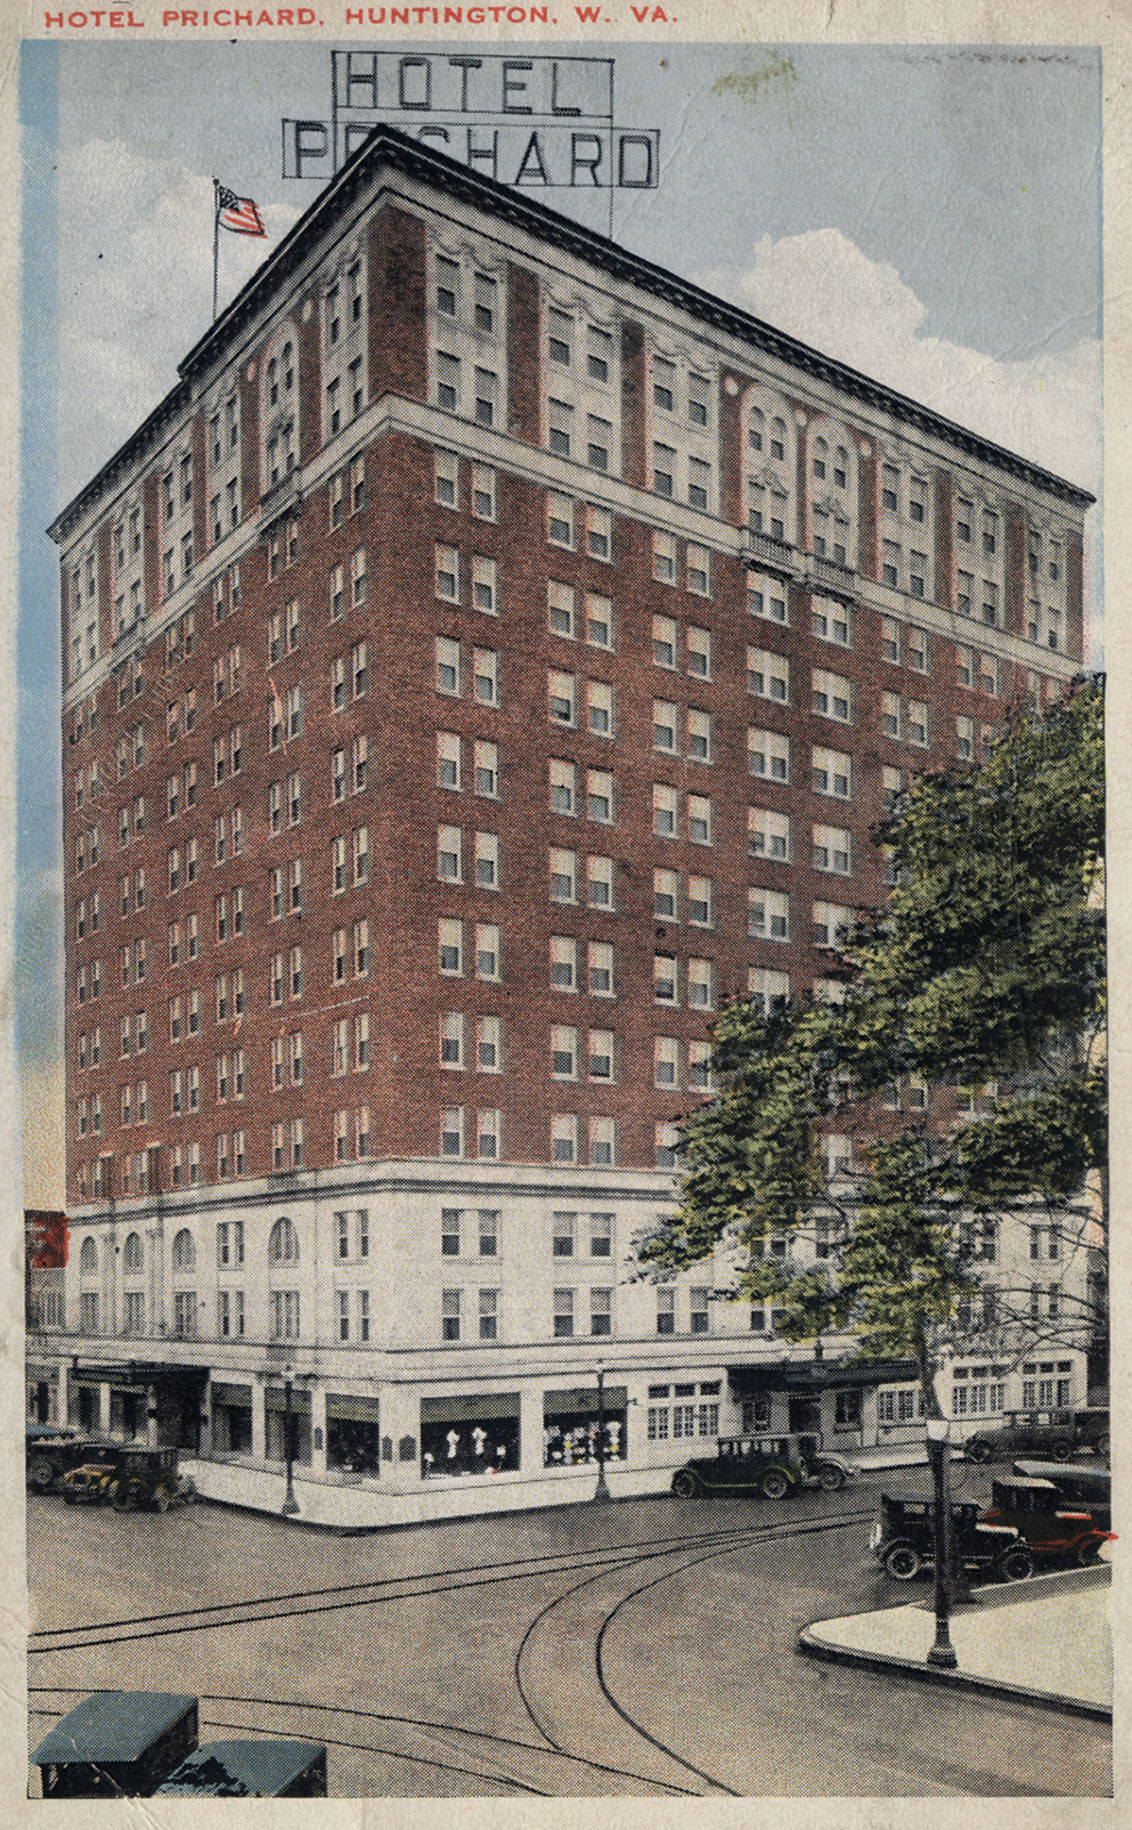 The Hotel Prichard